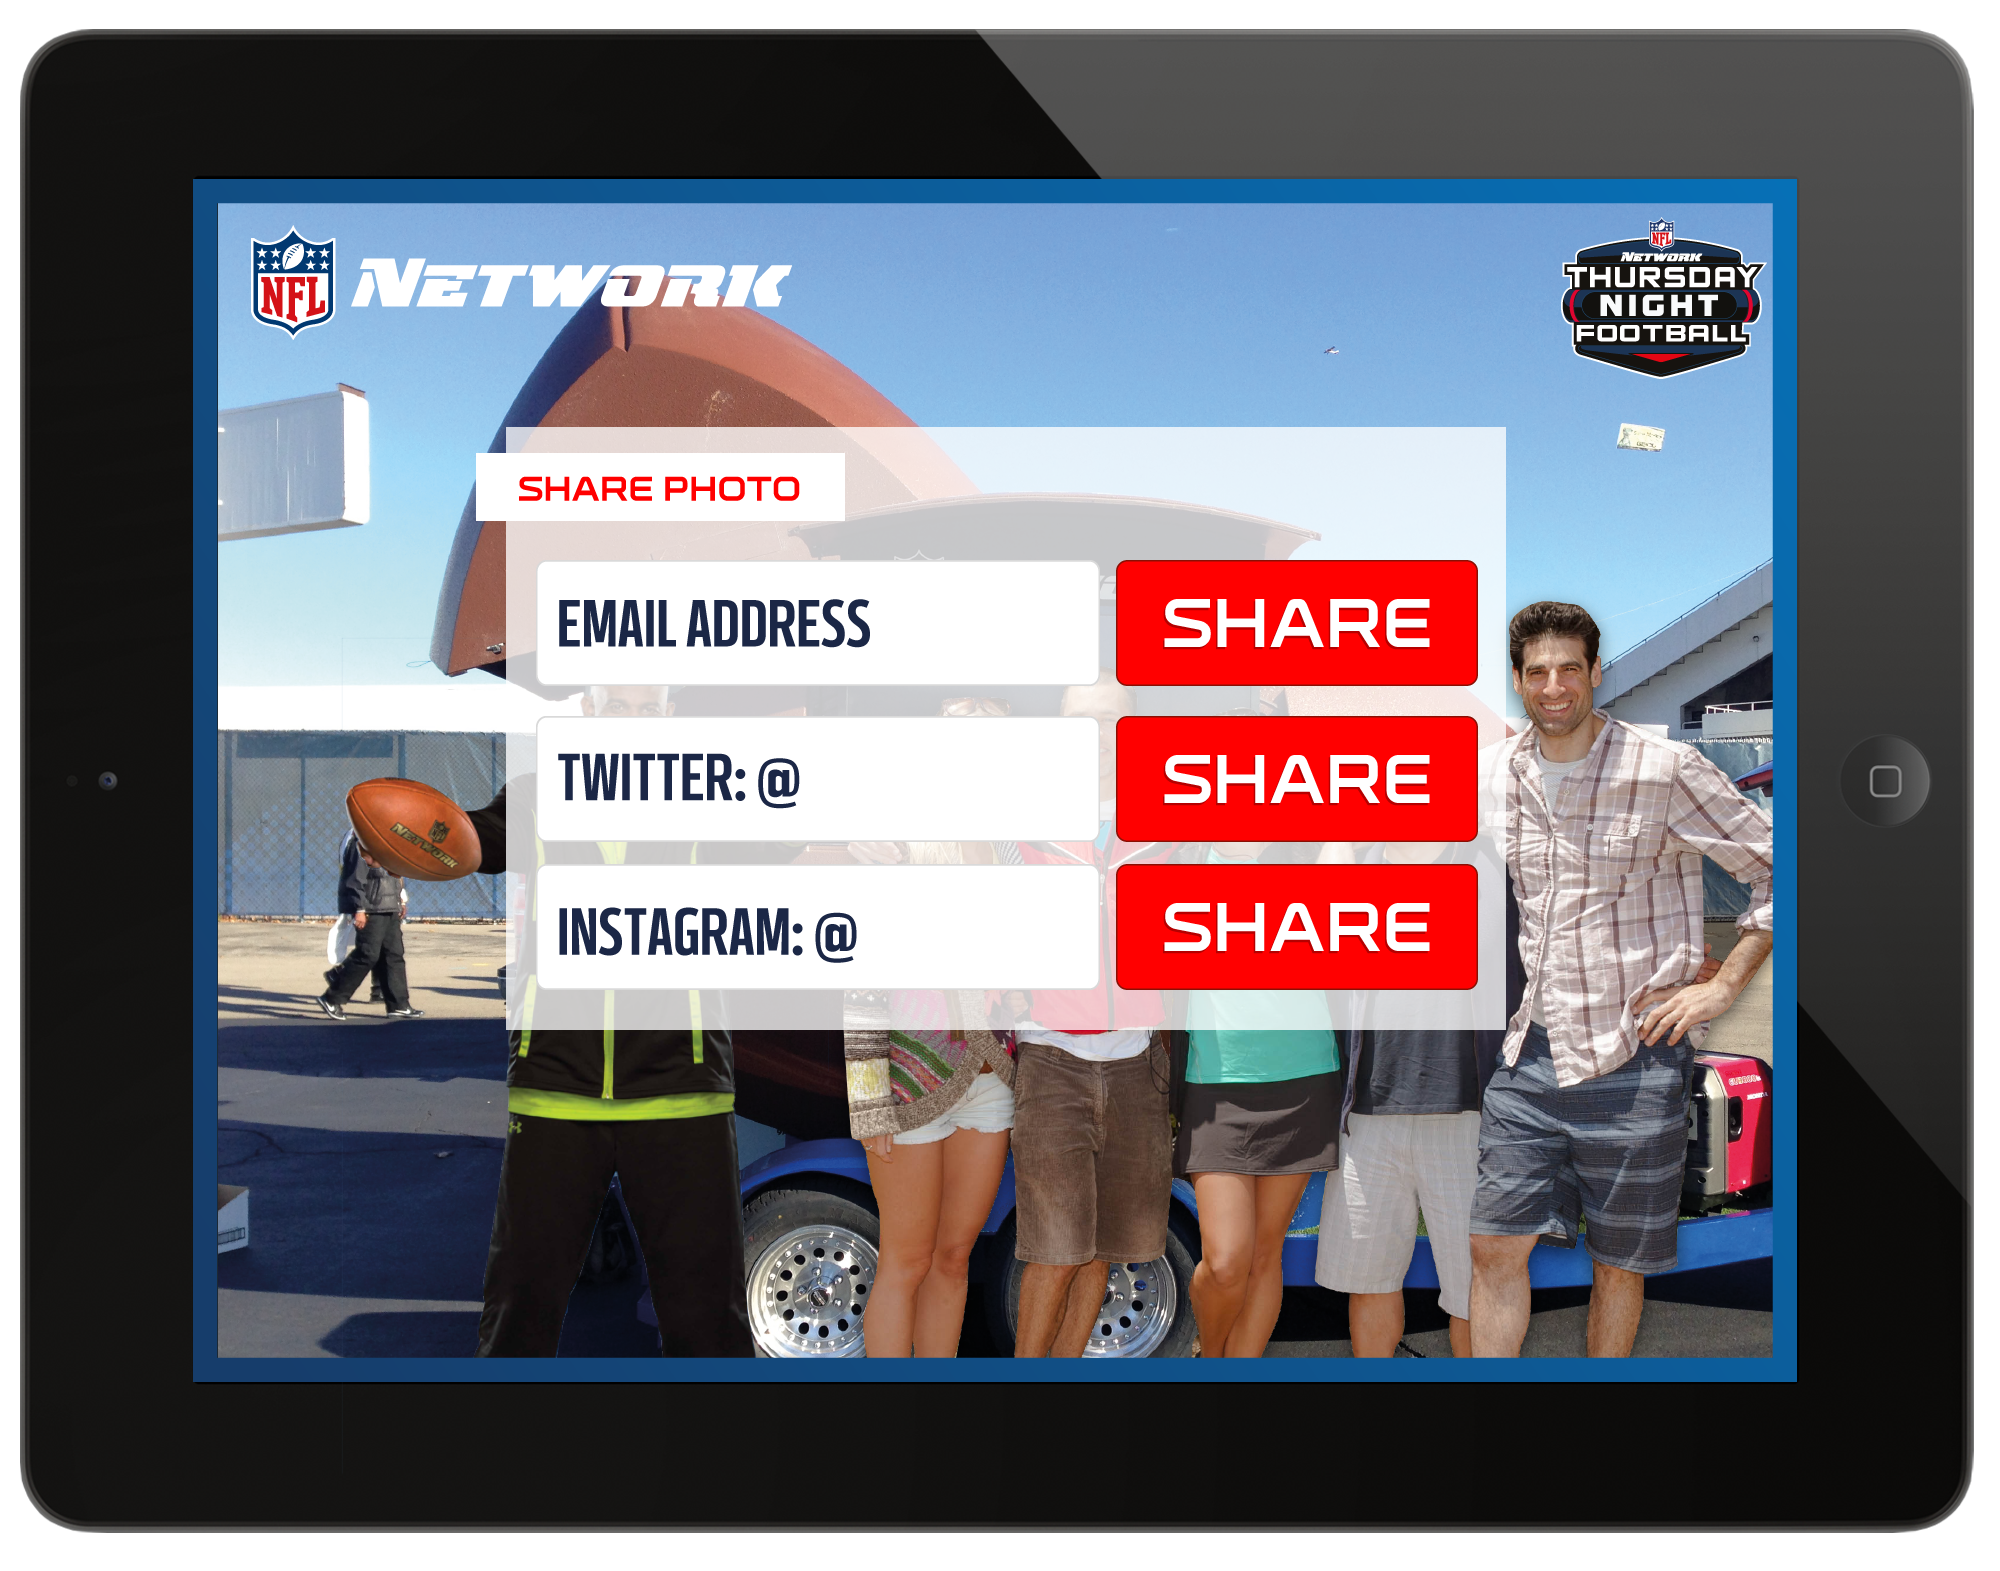 nfl_screen4